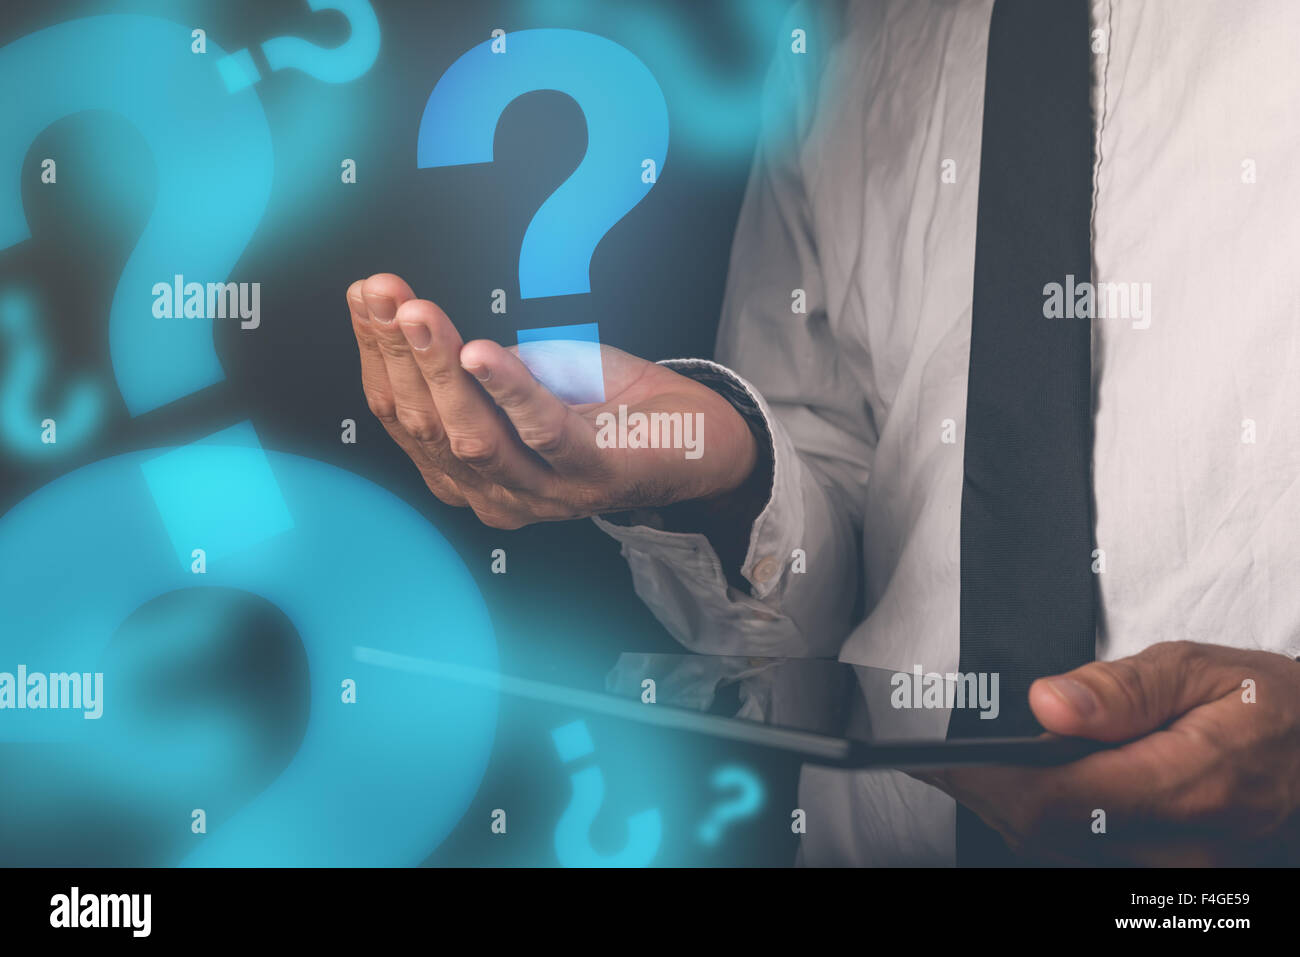 Businessman with questions, businessperson with digital tablet holding question mark, retro toned image, selective - Stock Image